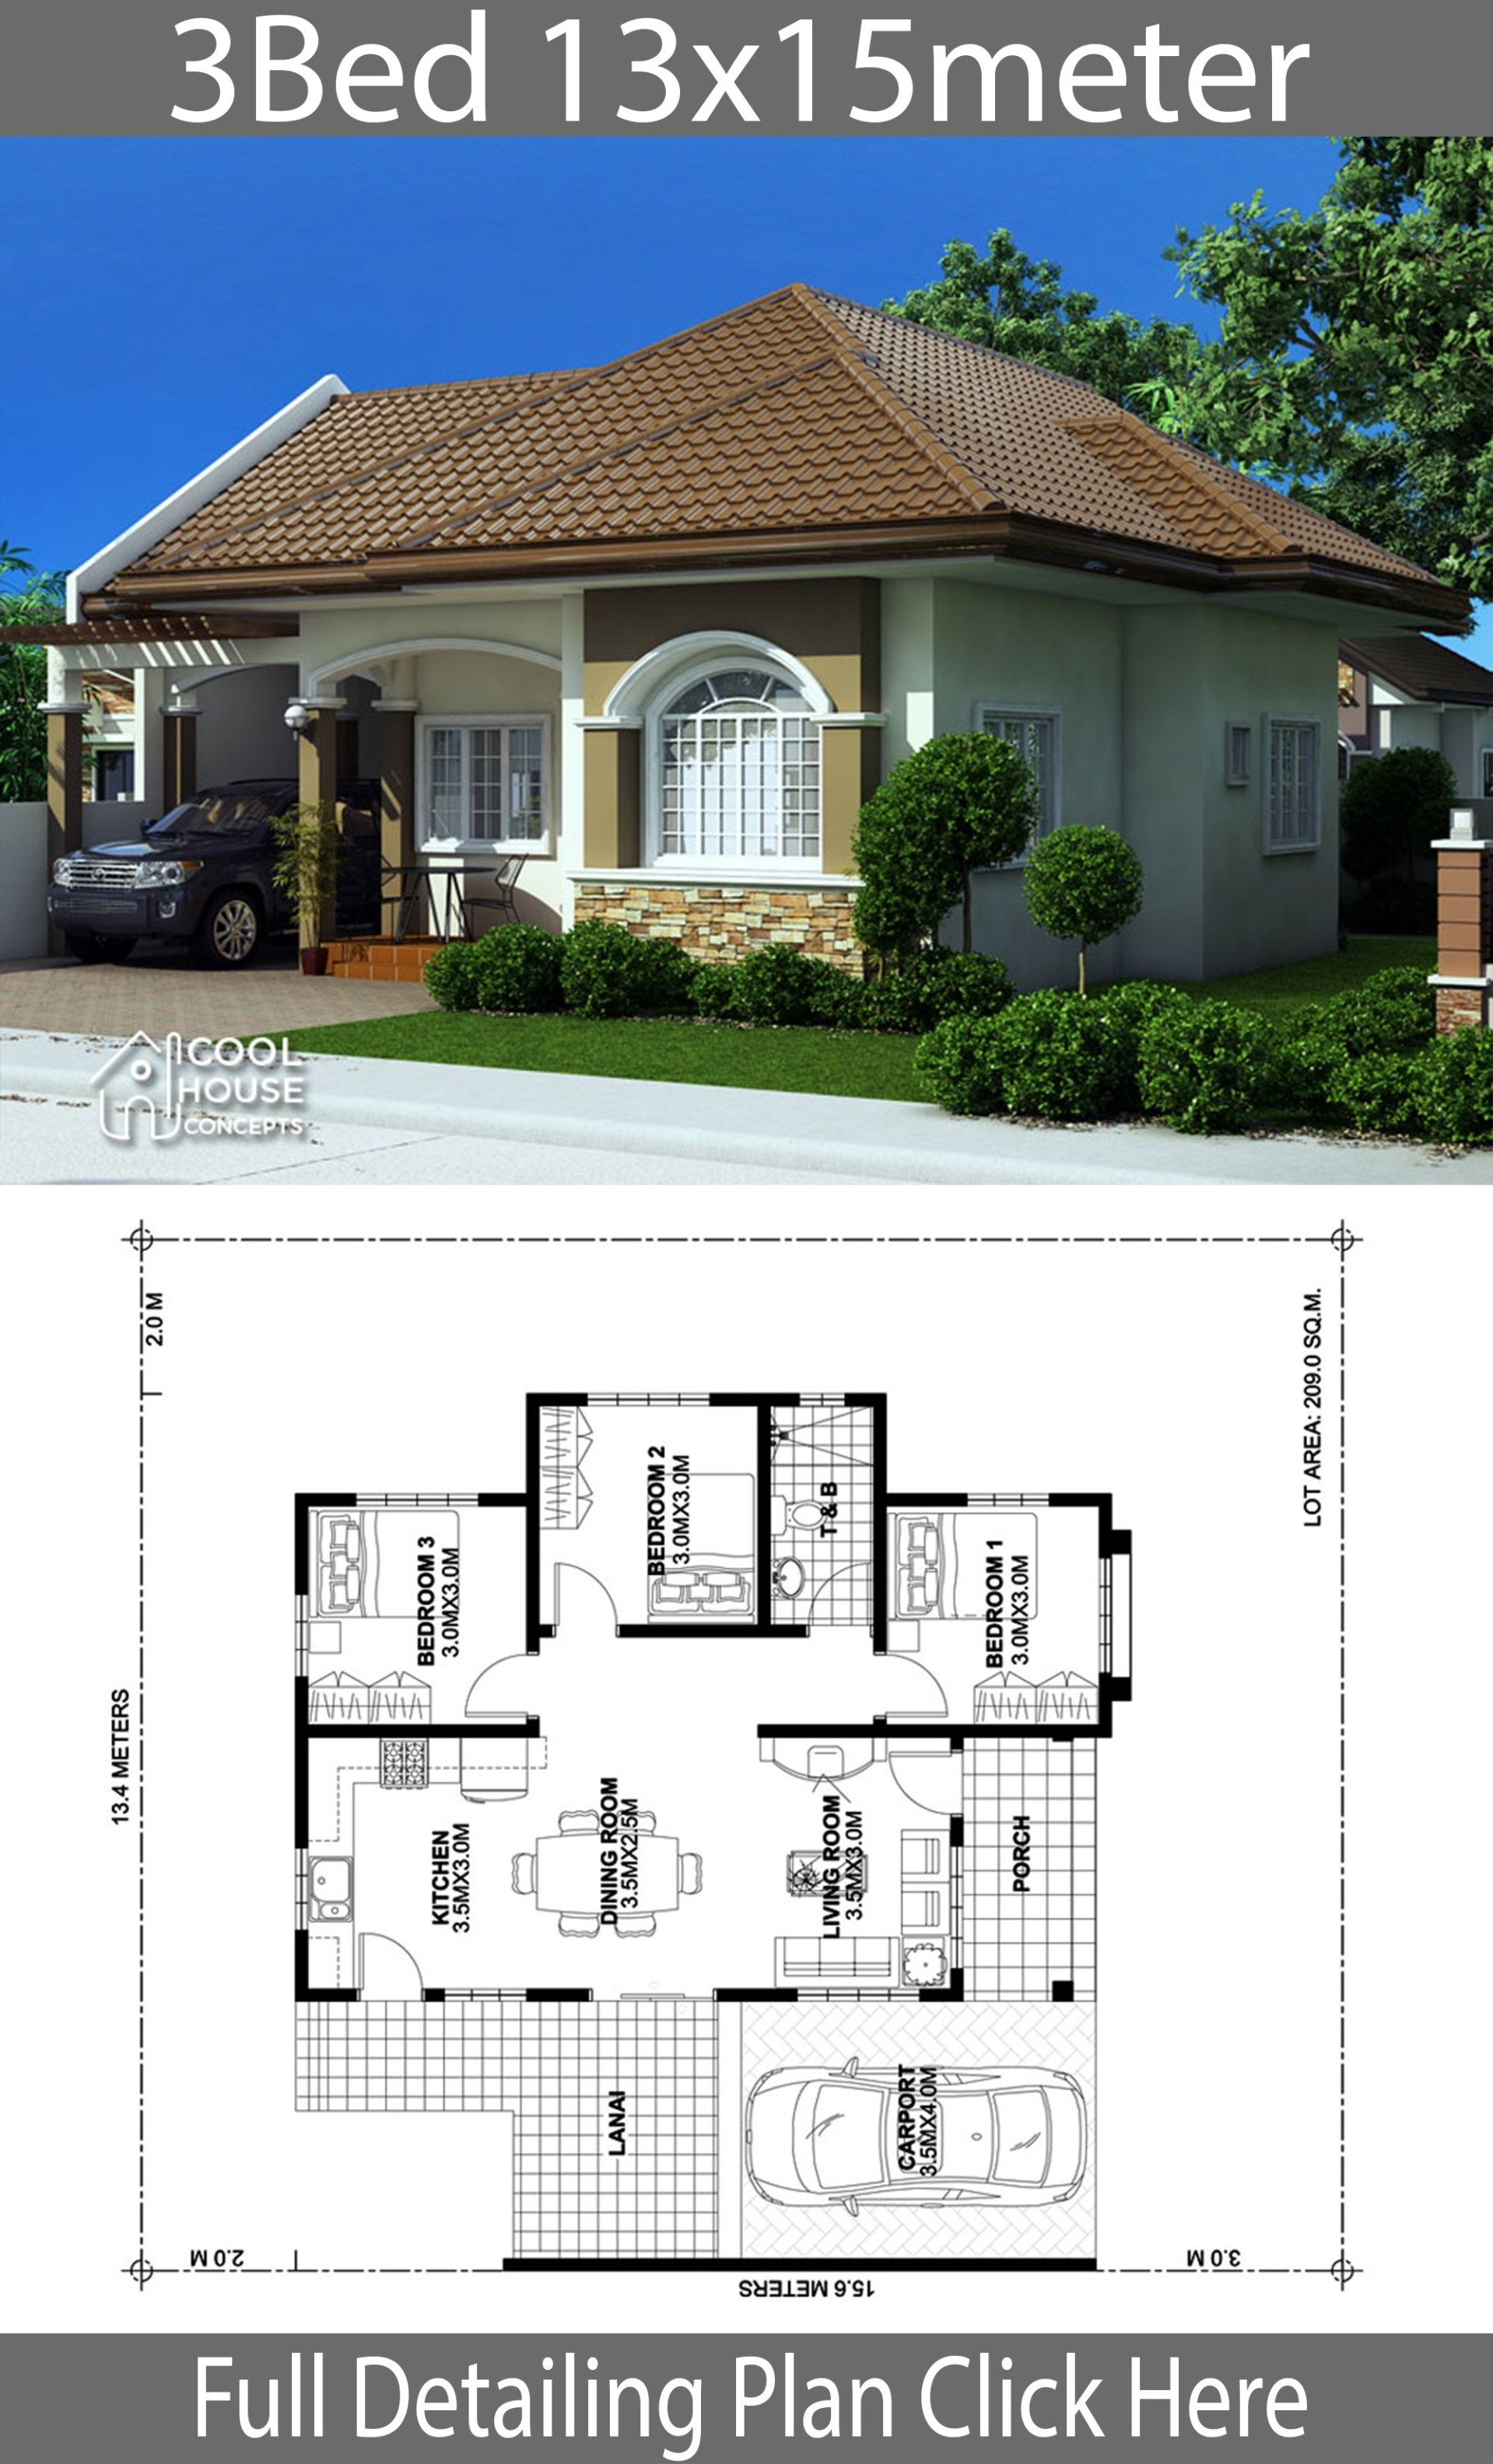 Home Design Plan 13x15m With 3 Bedrooms Modern Bungalow House